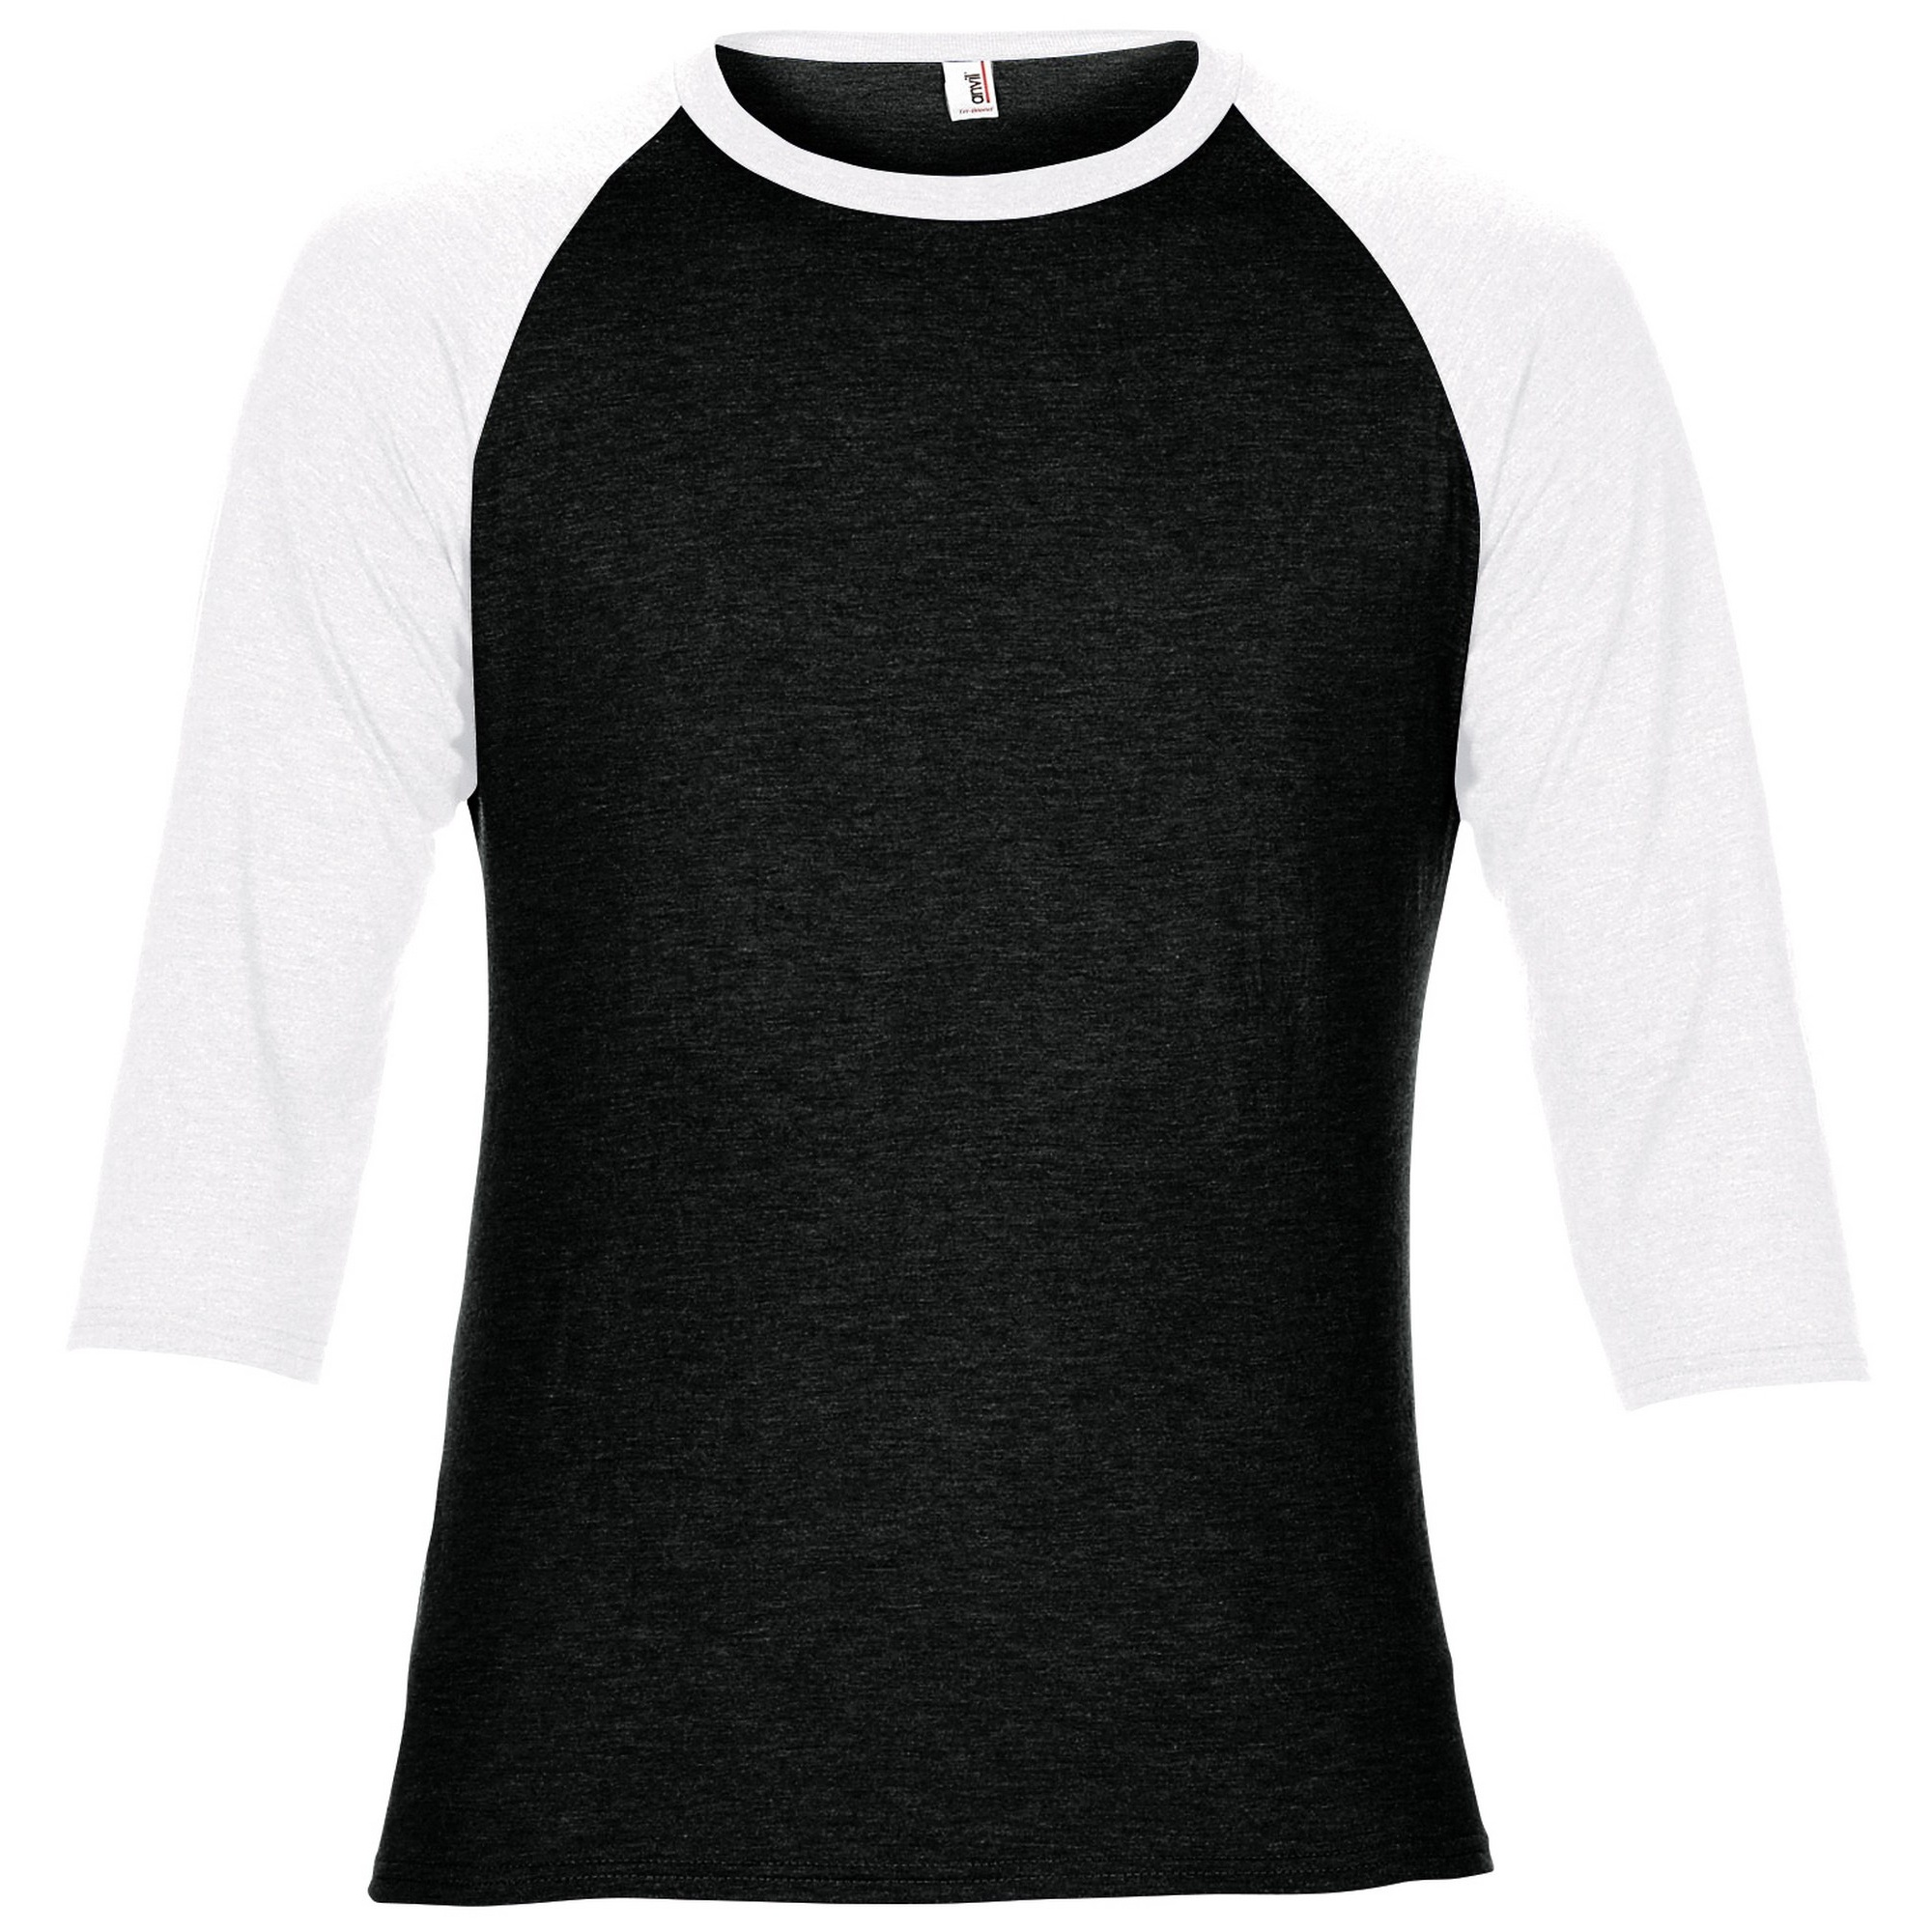 Anvil unisex two tone tri blend 3 4 sleeve raglan t shirt for Where are anvil shirts made